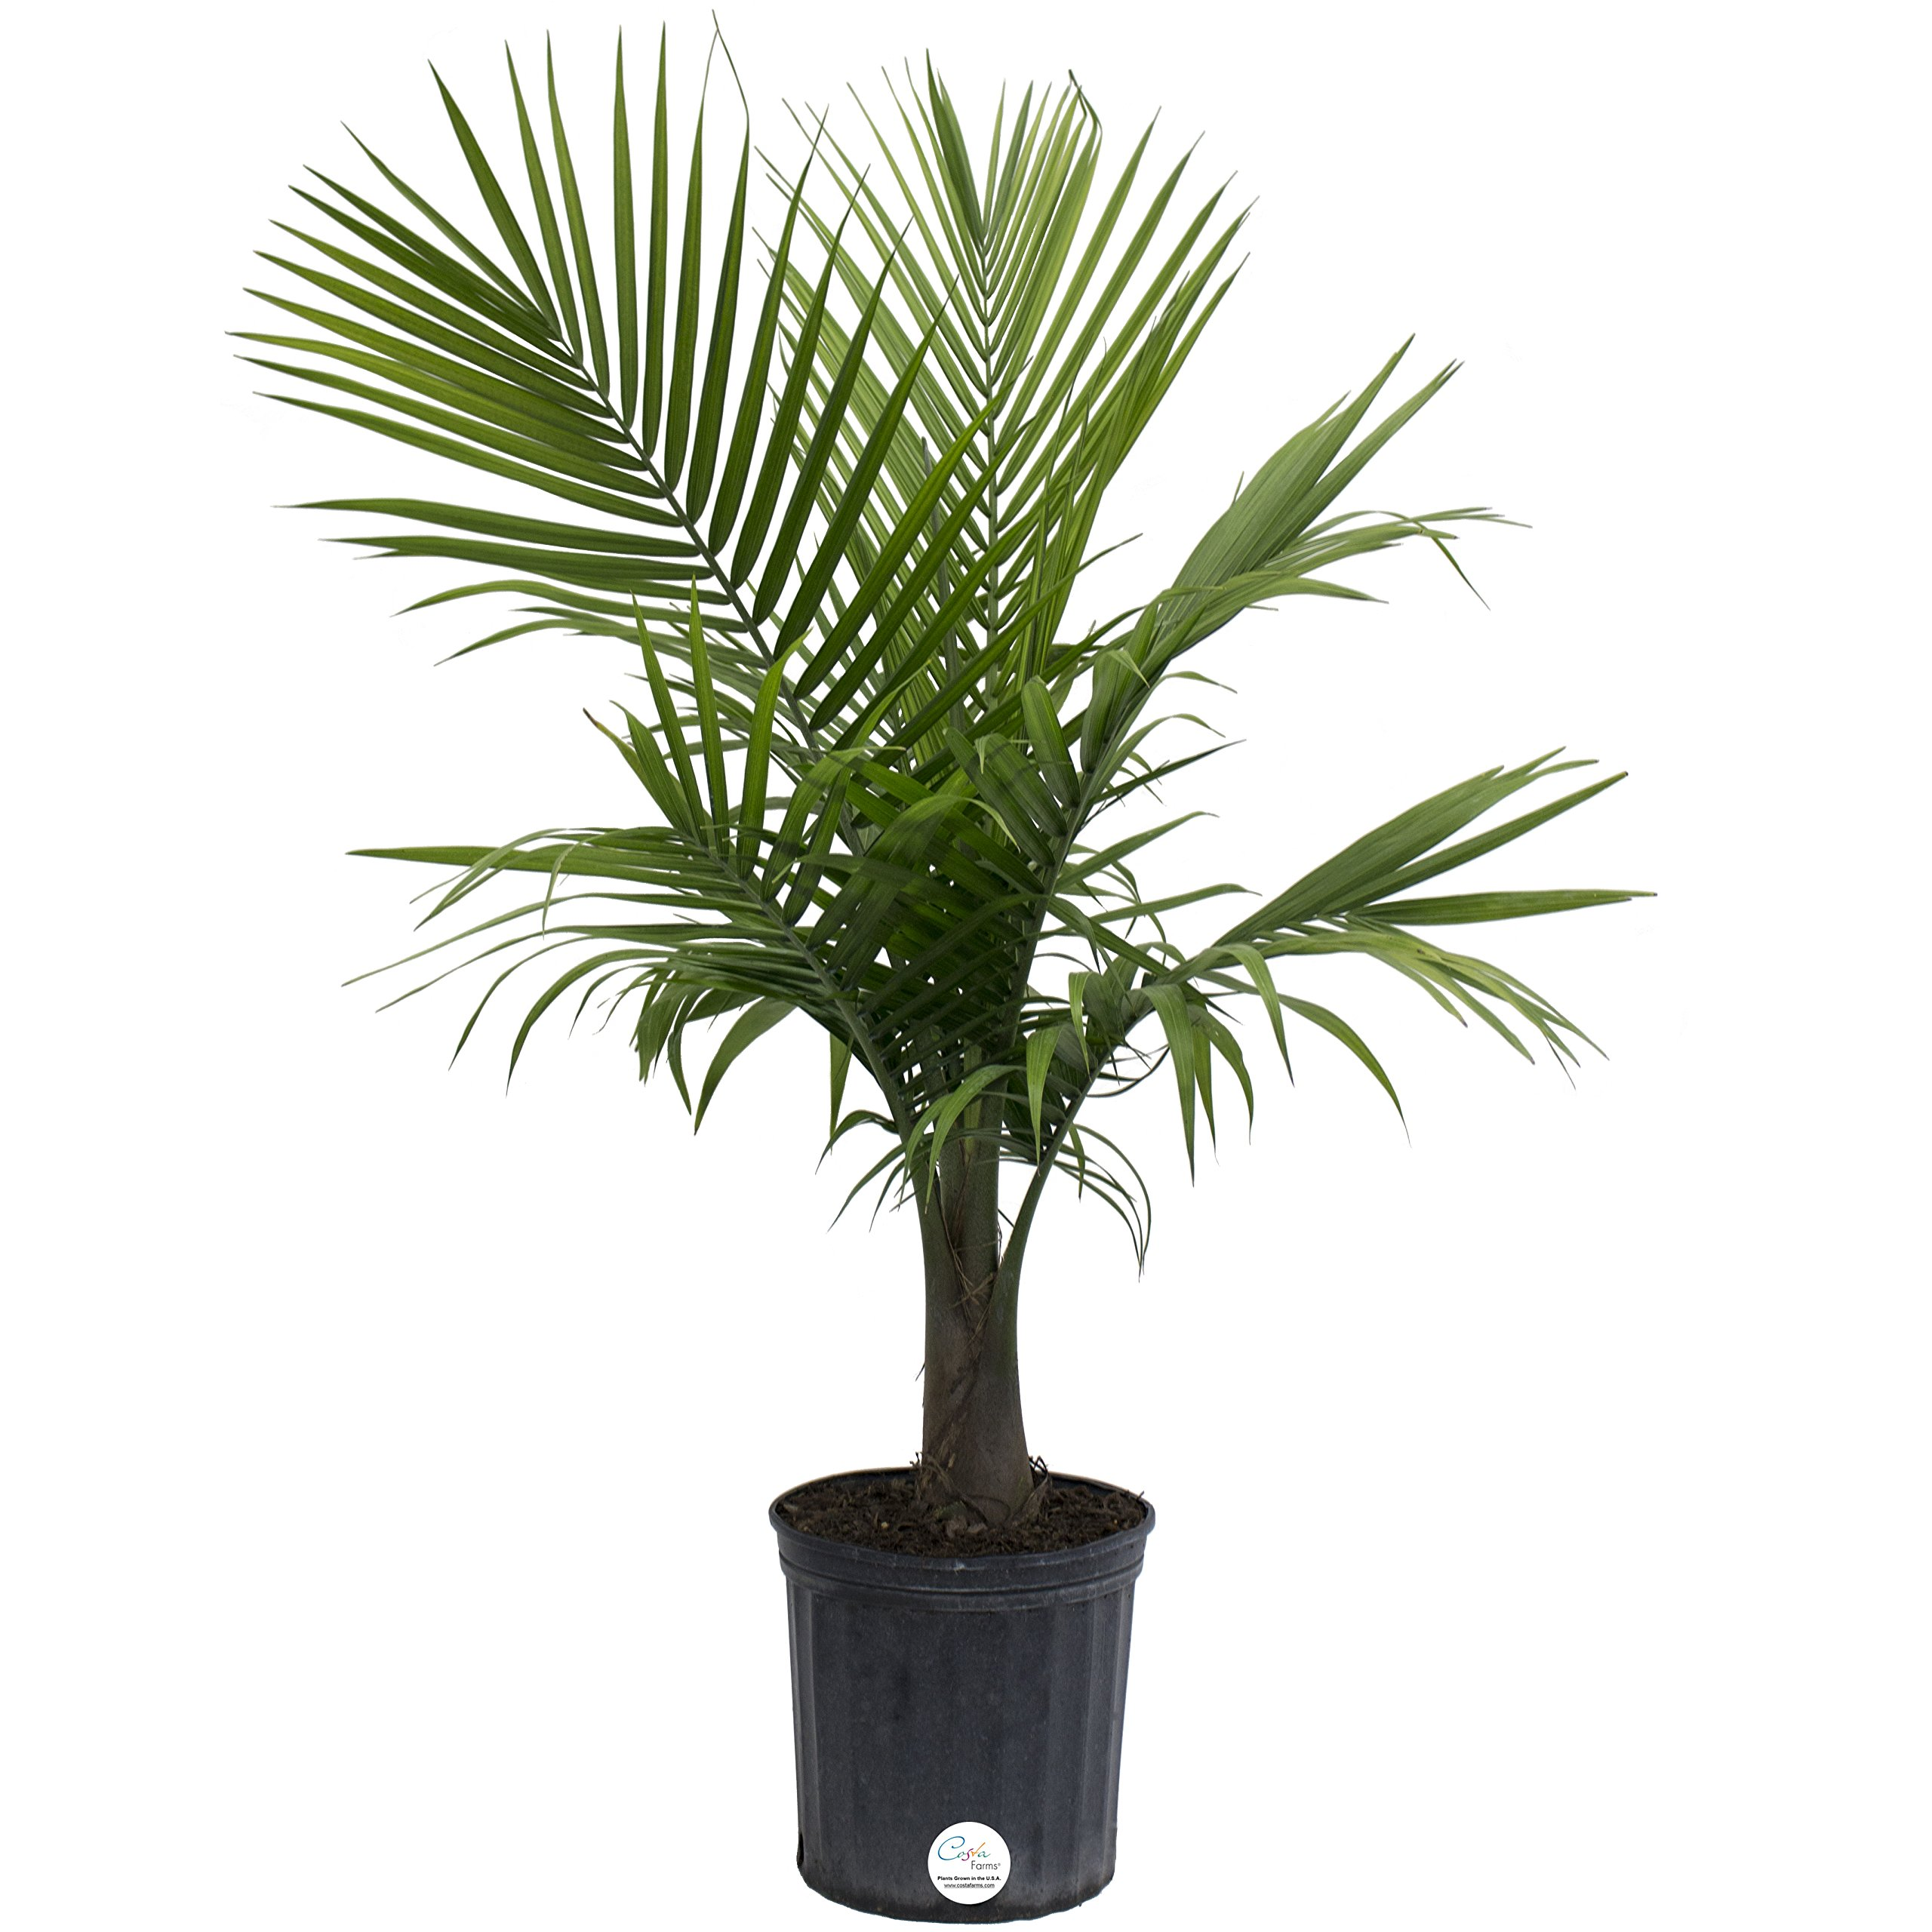 Costa Farms Majesty Palm Tree, Live Indoor Plant, 3 to 4-Feet Tall, Ships in Grow Pot, Fresh From Our Farm, Excellent Gift by Costa Farms (Image #1)